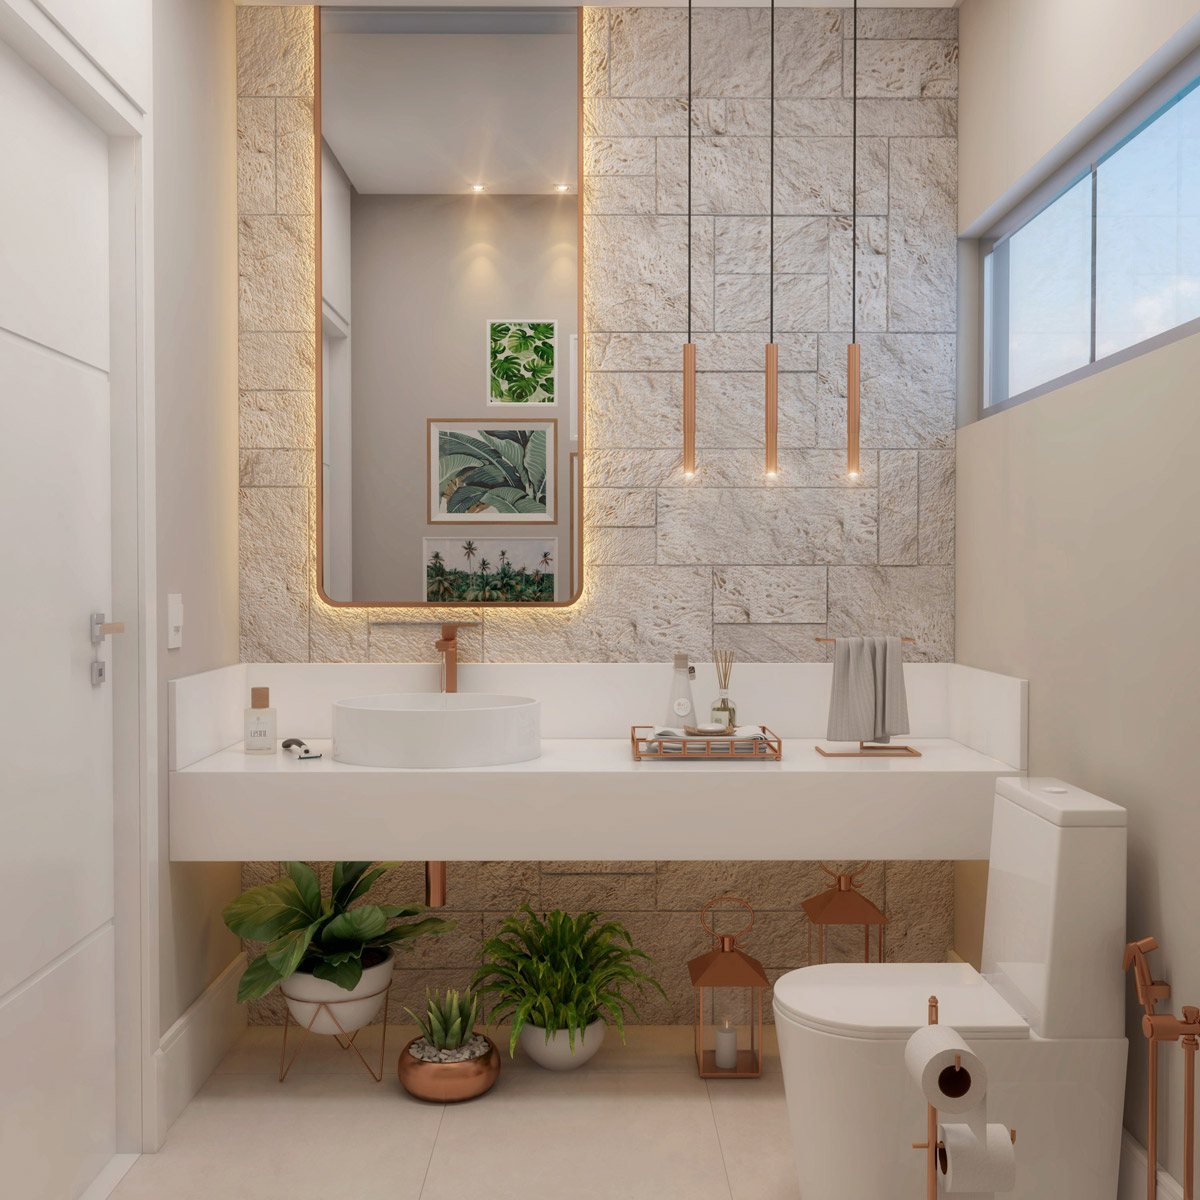 40 Modern Bathroom Vanities That Overflow With Style images 7